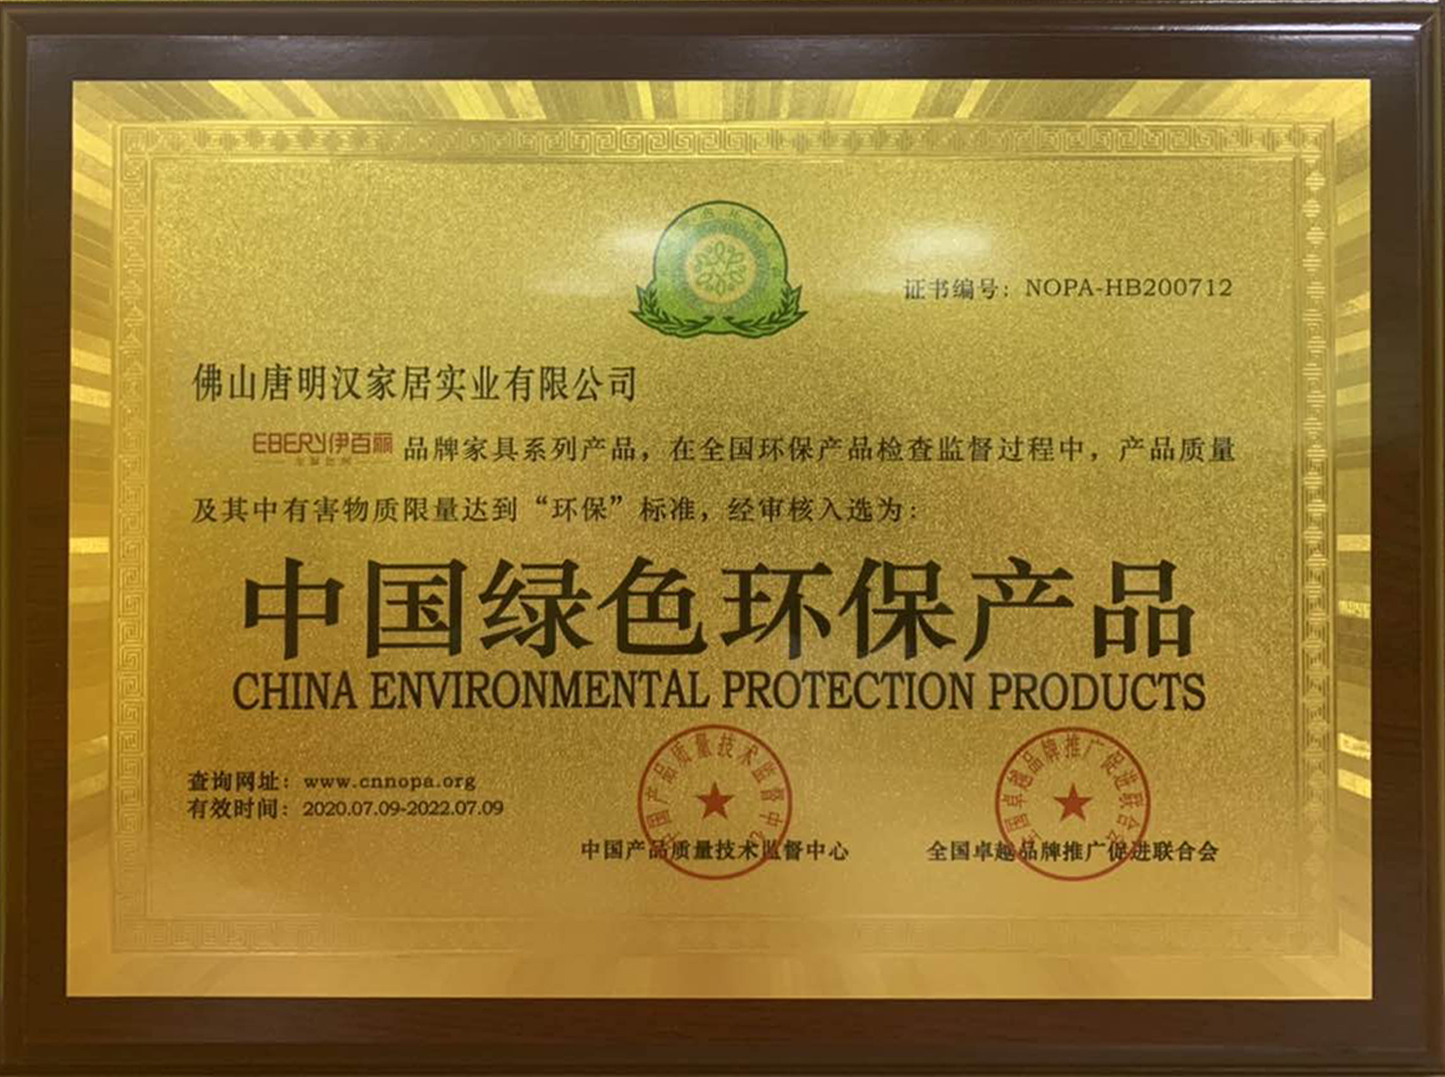 A prize for Chinese environment protection products